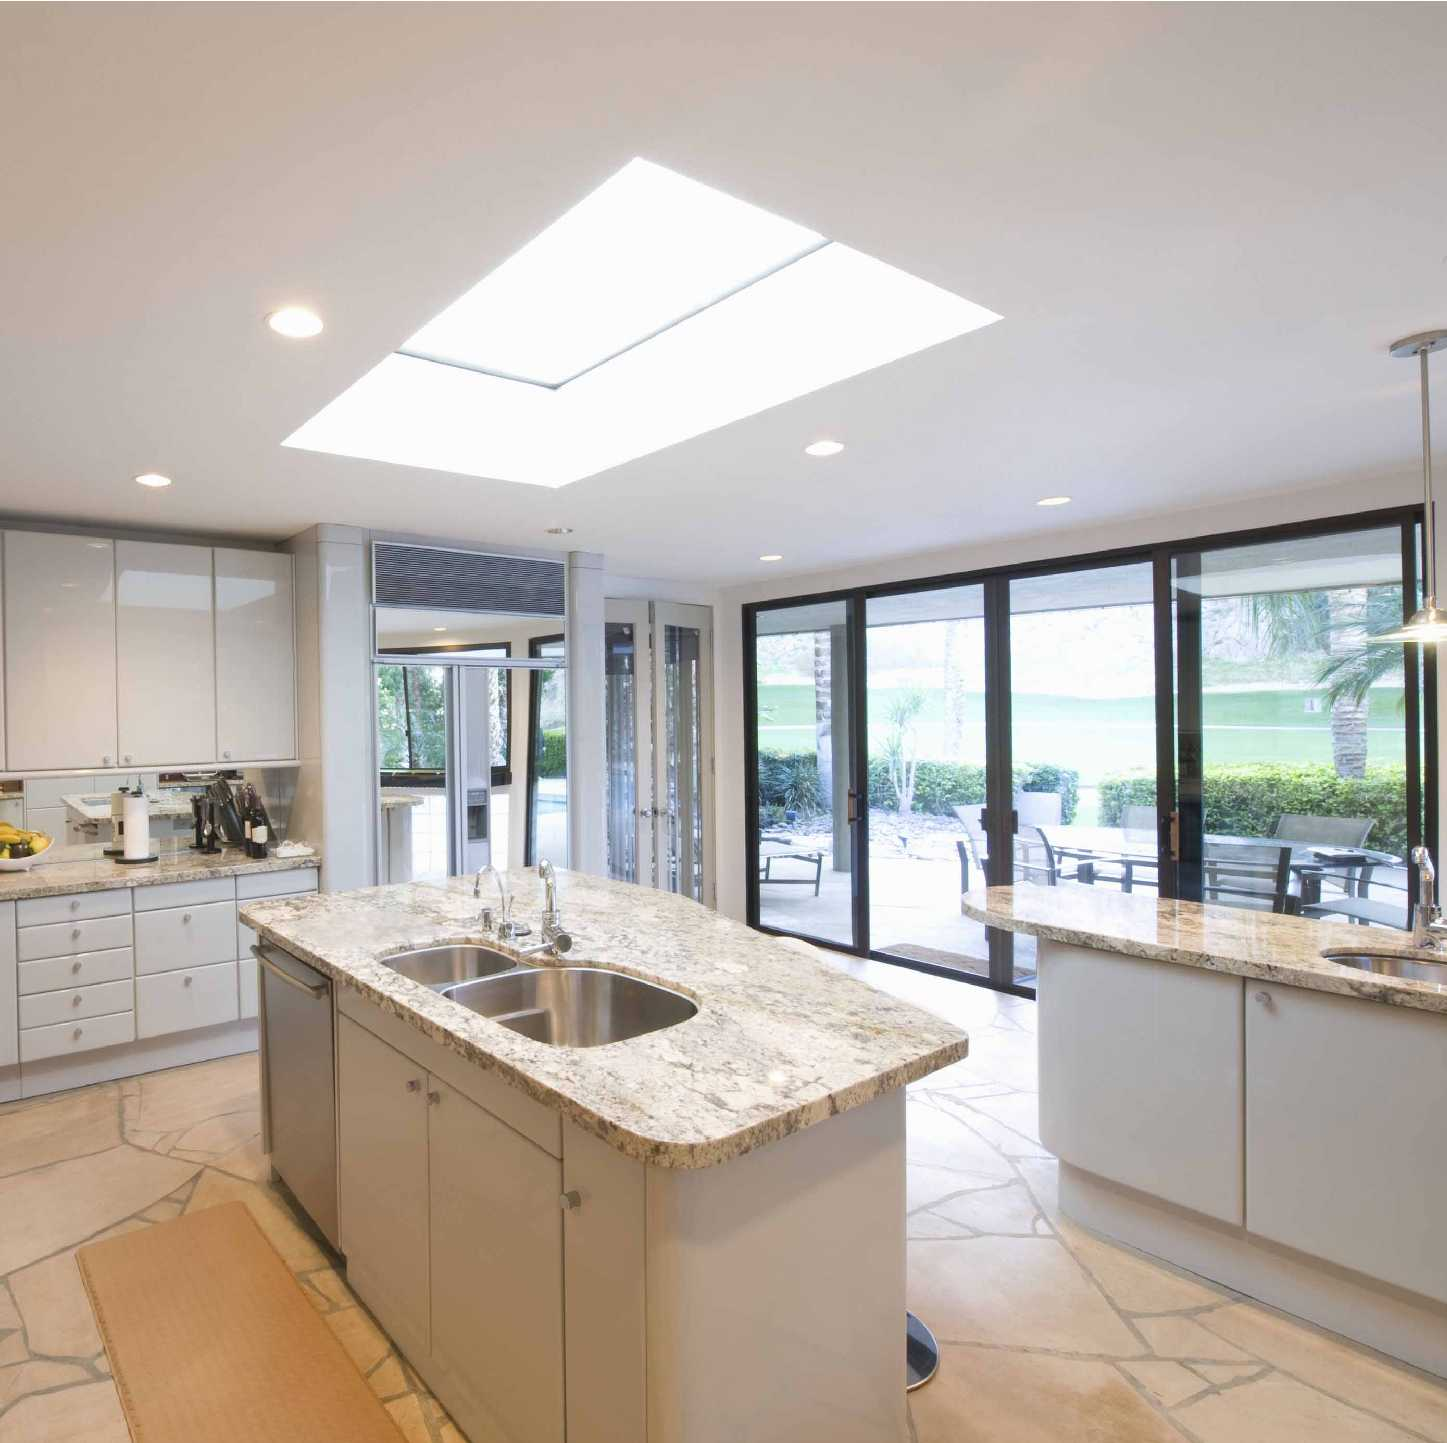 EcoGard Flat Roof light, Double Glazed, Fixed, 1,000mm x 1,500mm